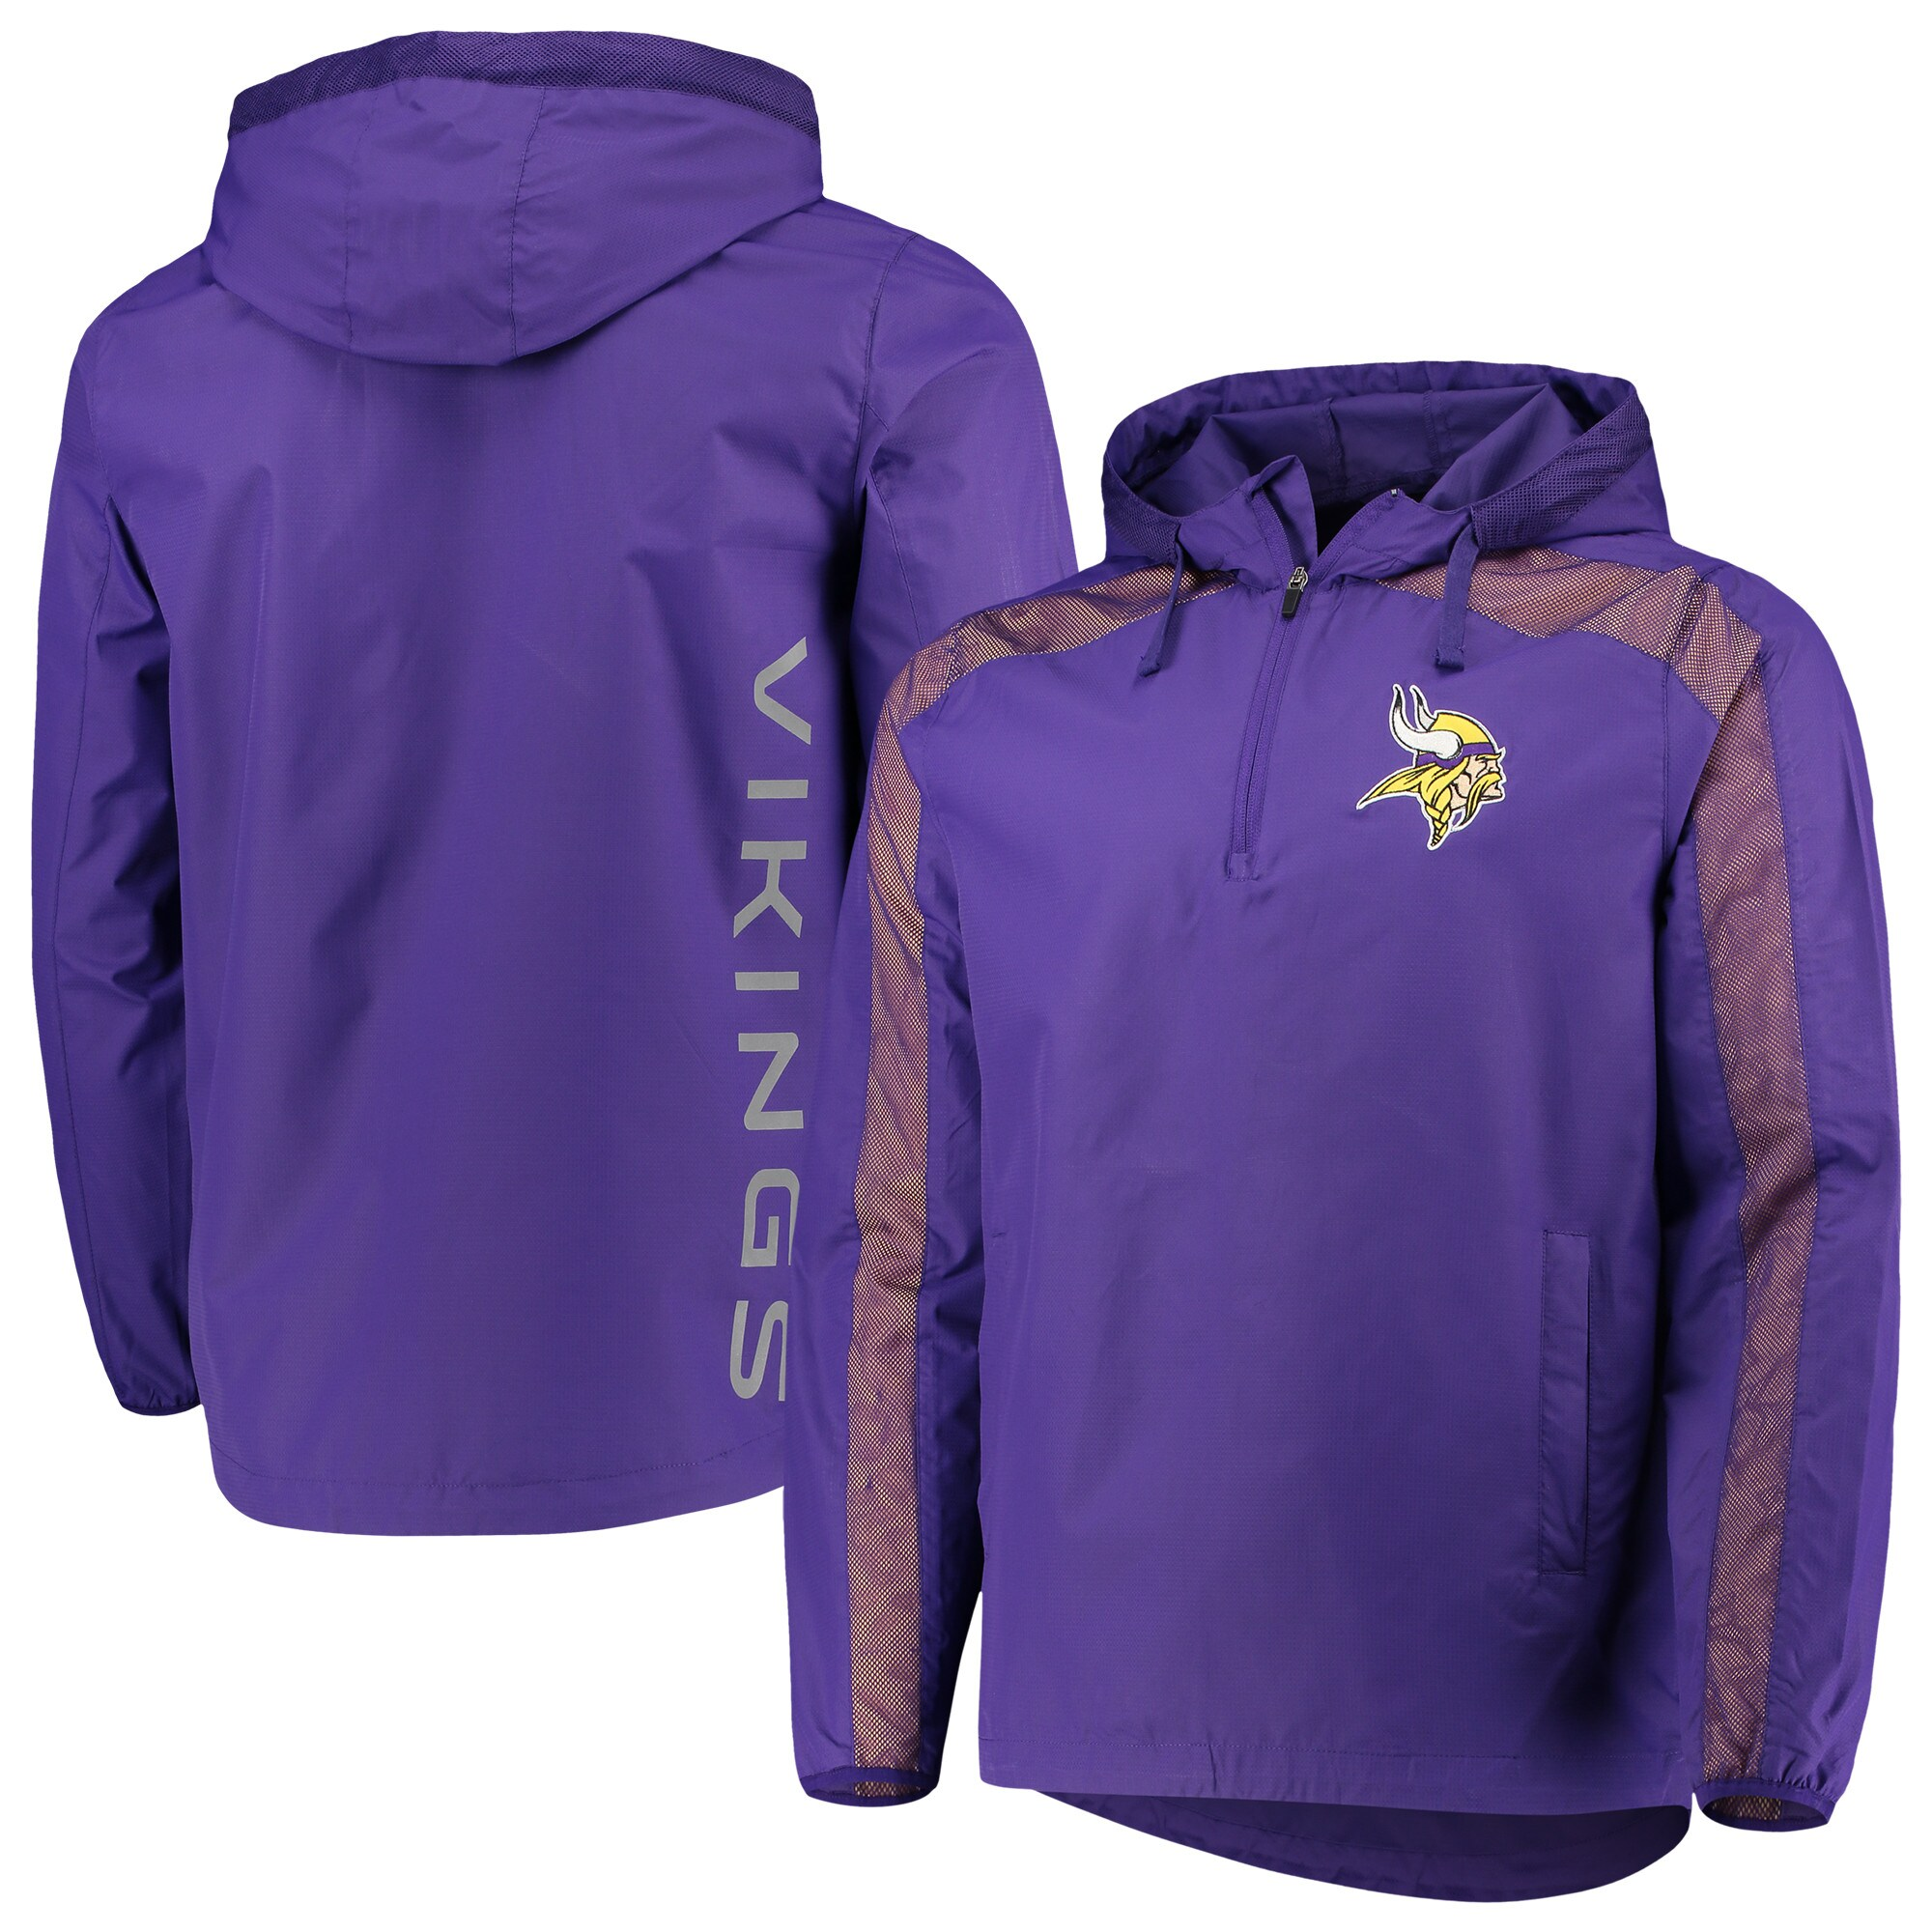 Minnesota Vikings G-III Sports by Carl Banks Lineup Hooded Half-Zip Jacket - Purple